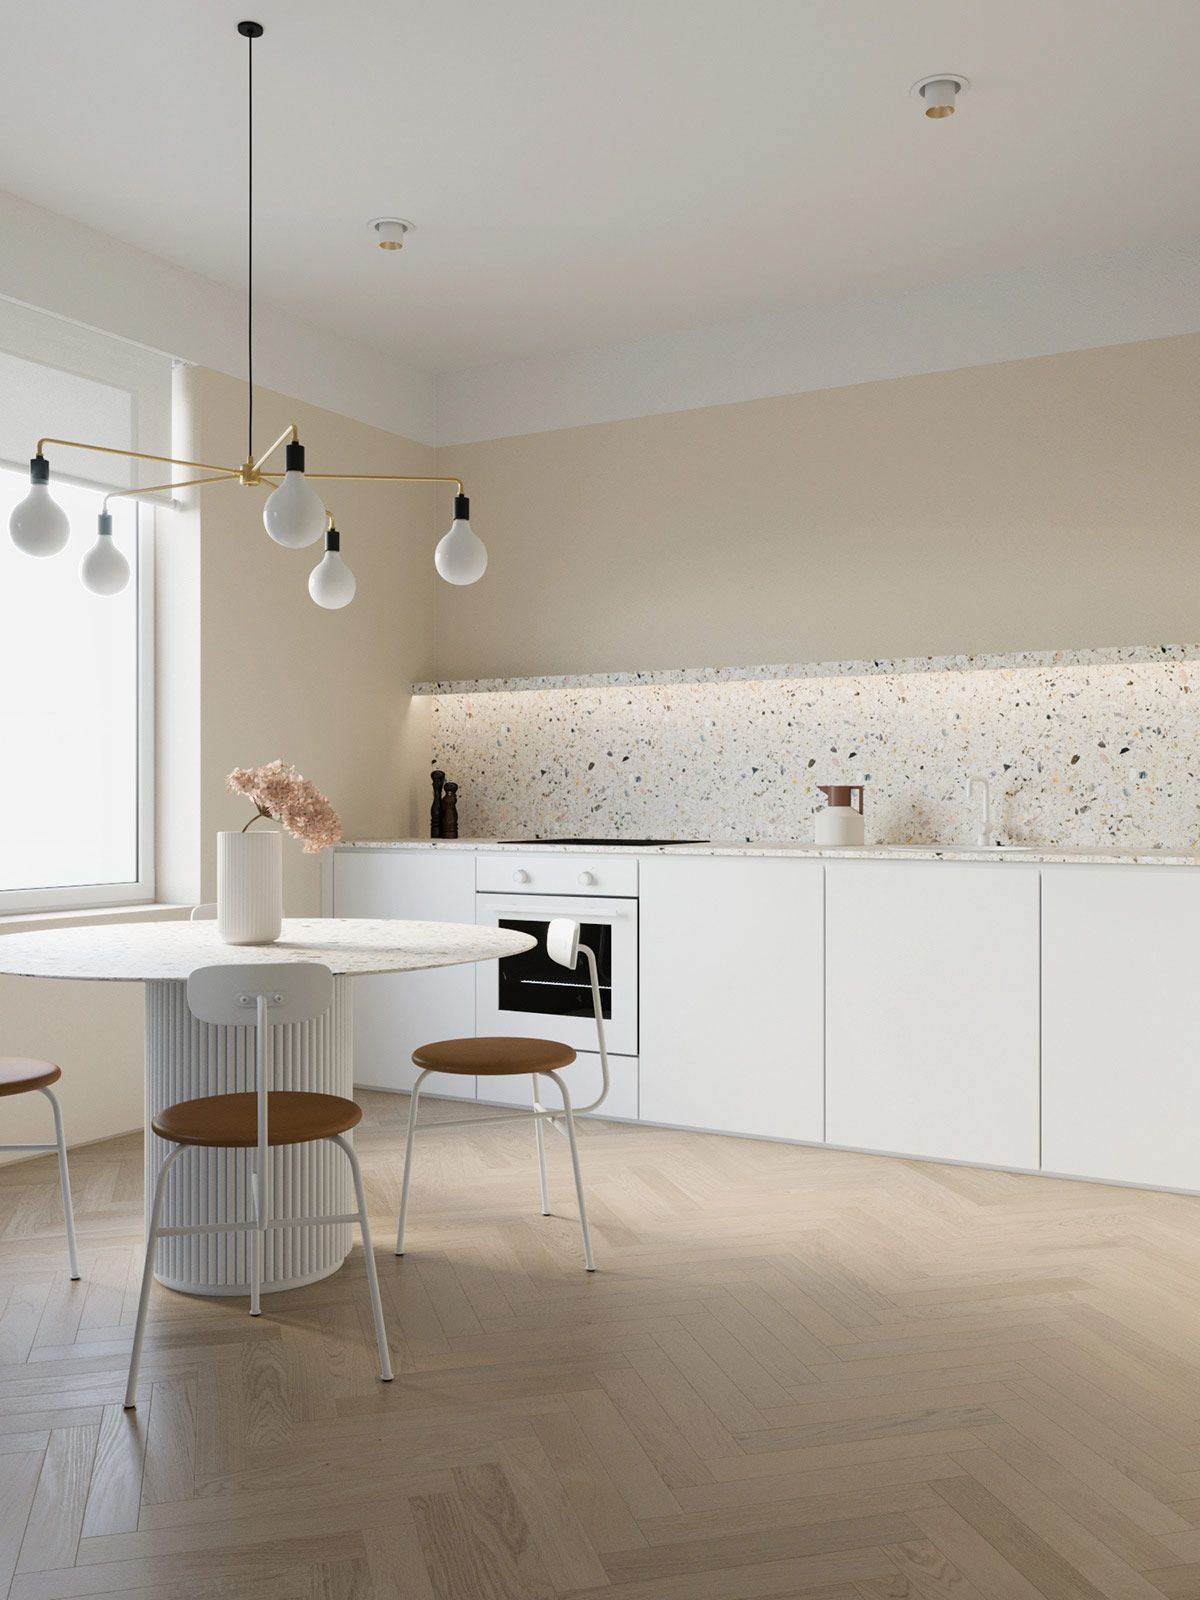 Coffee And Cream Interiors With A Swirl Of Sophisticated Style Minimalist Dining Room Interior Home Decor